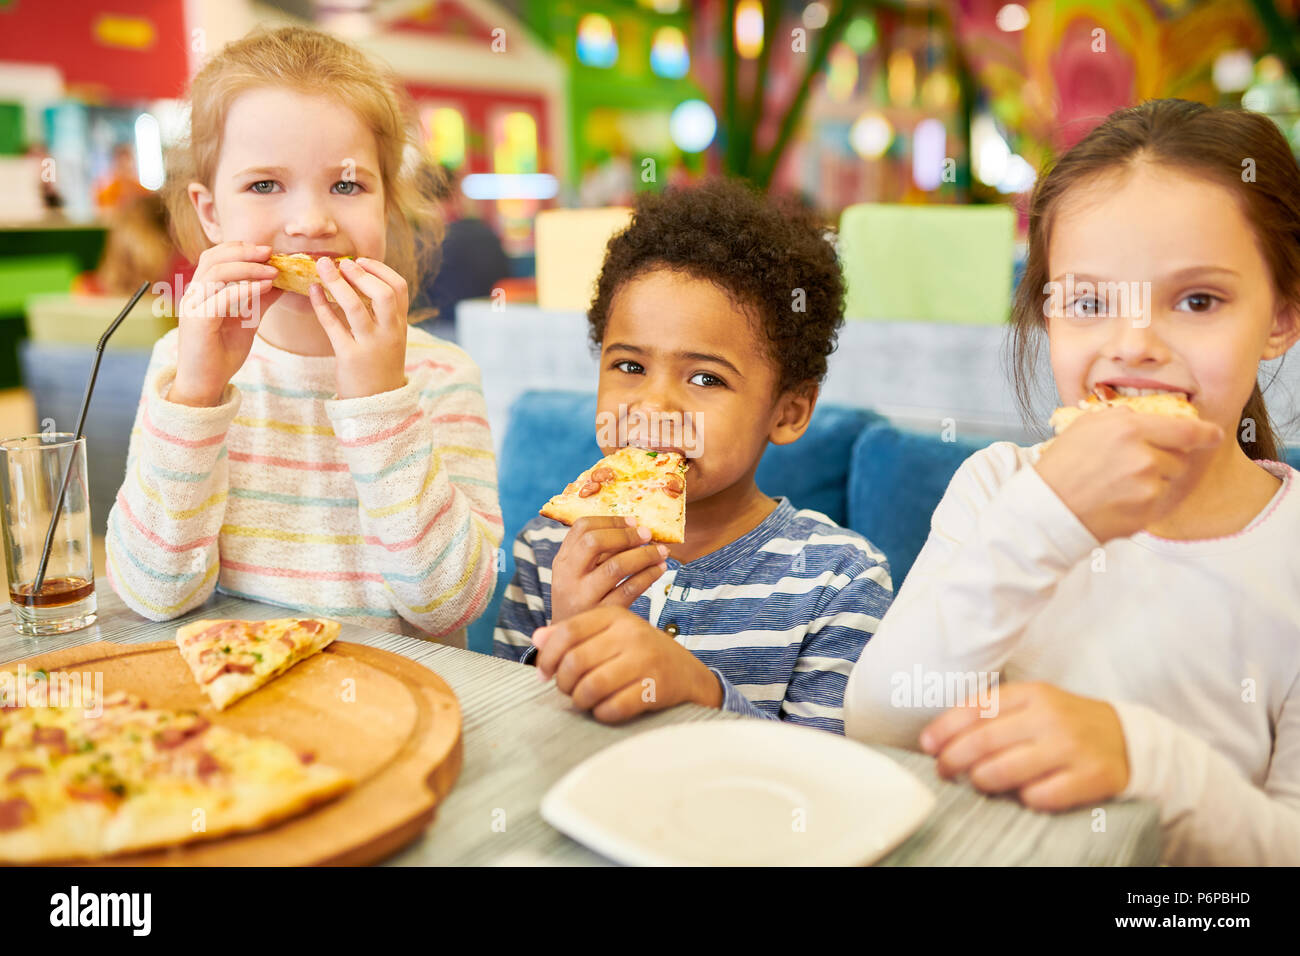 Children Eating Pizza in Cafe Stock Photo